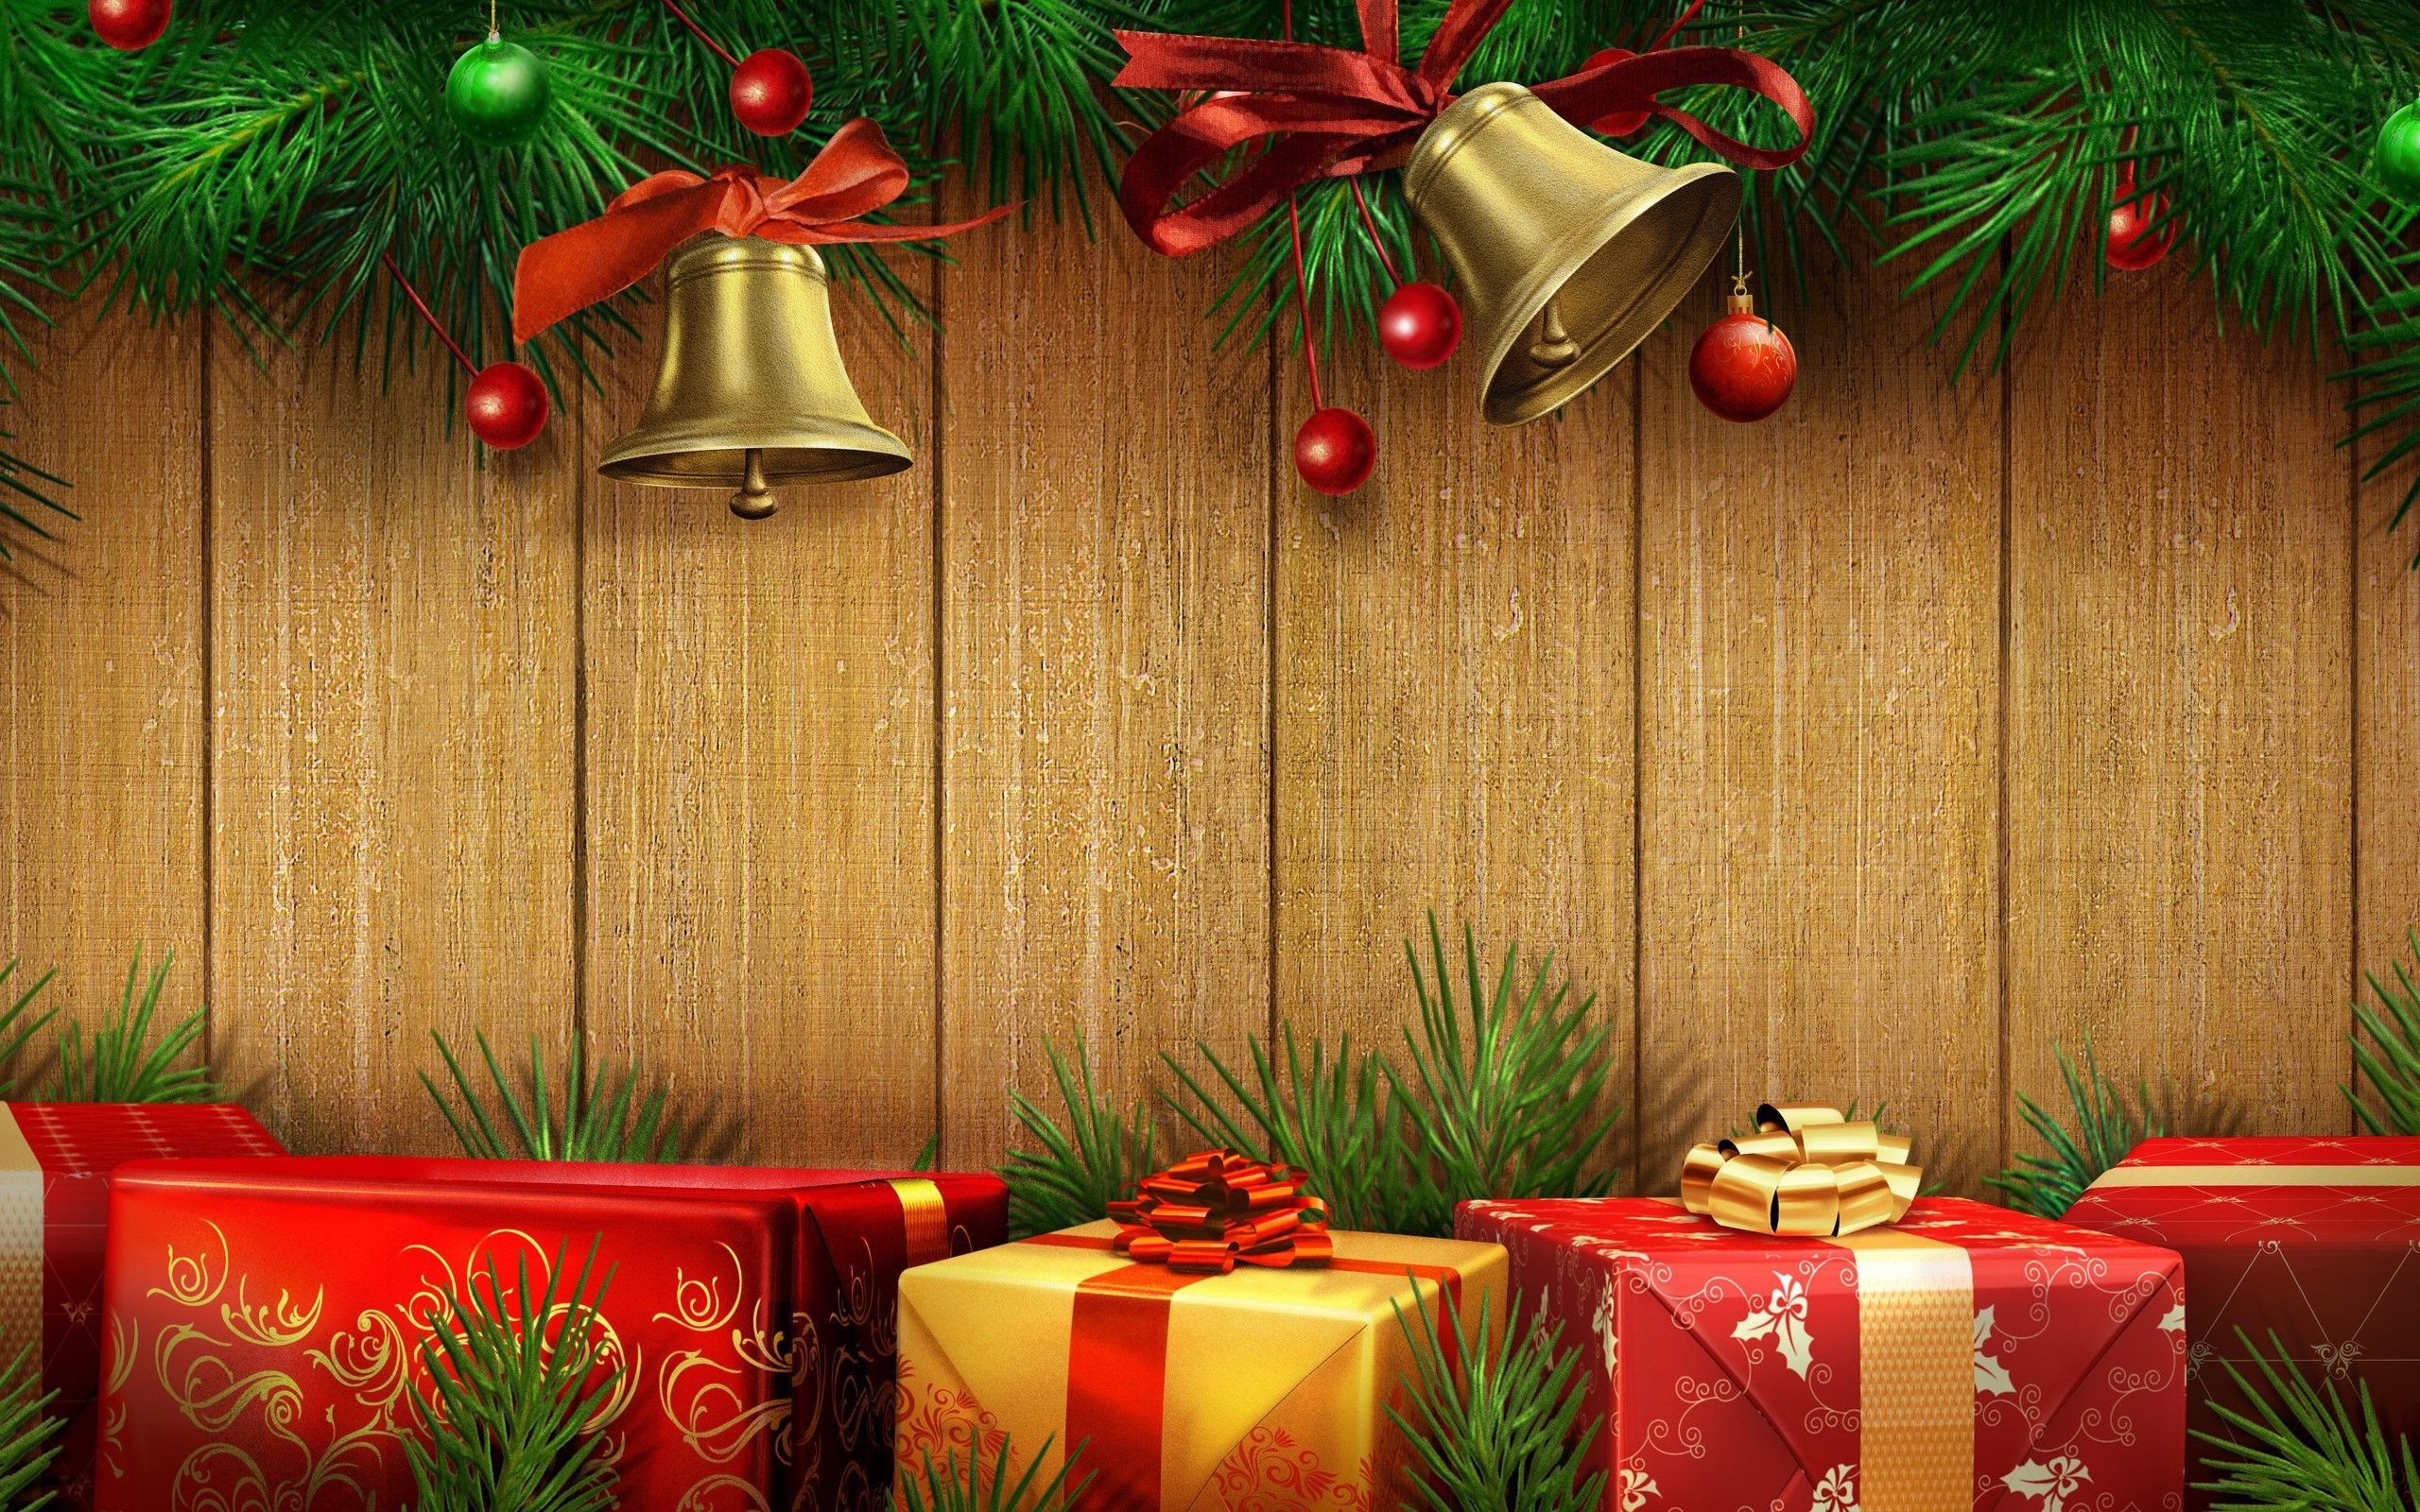 Christmas Gift Background 43 Images